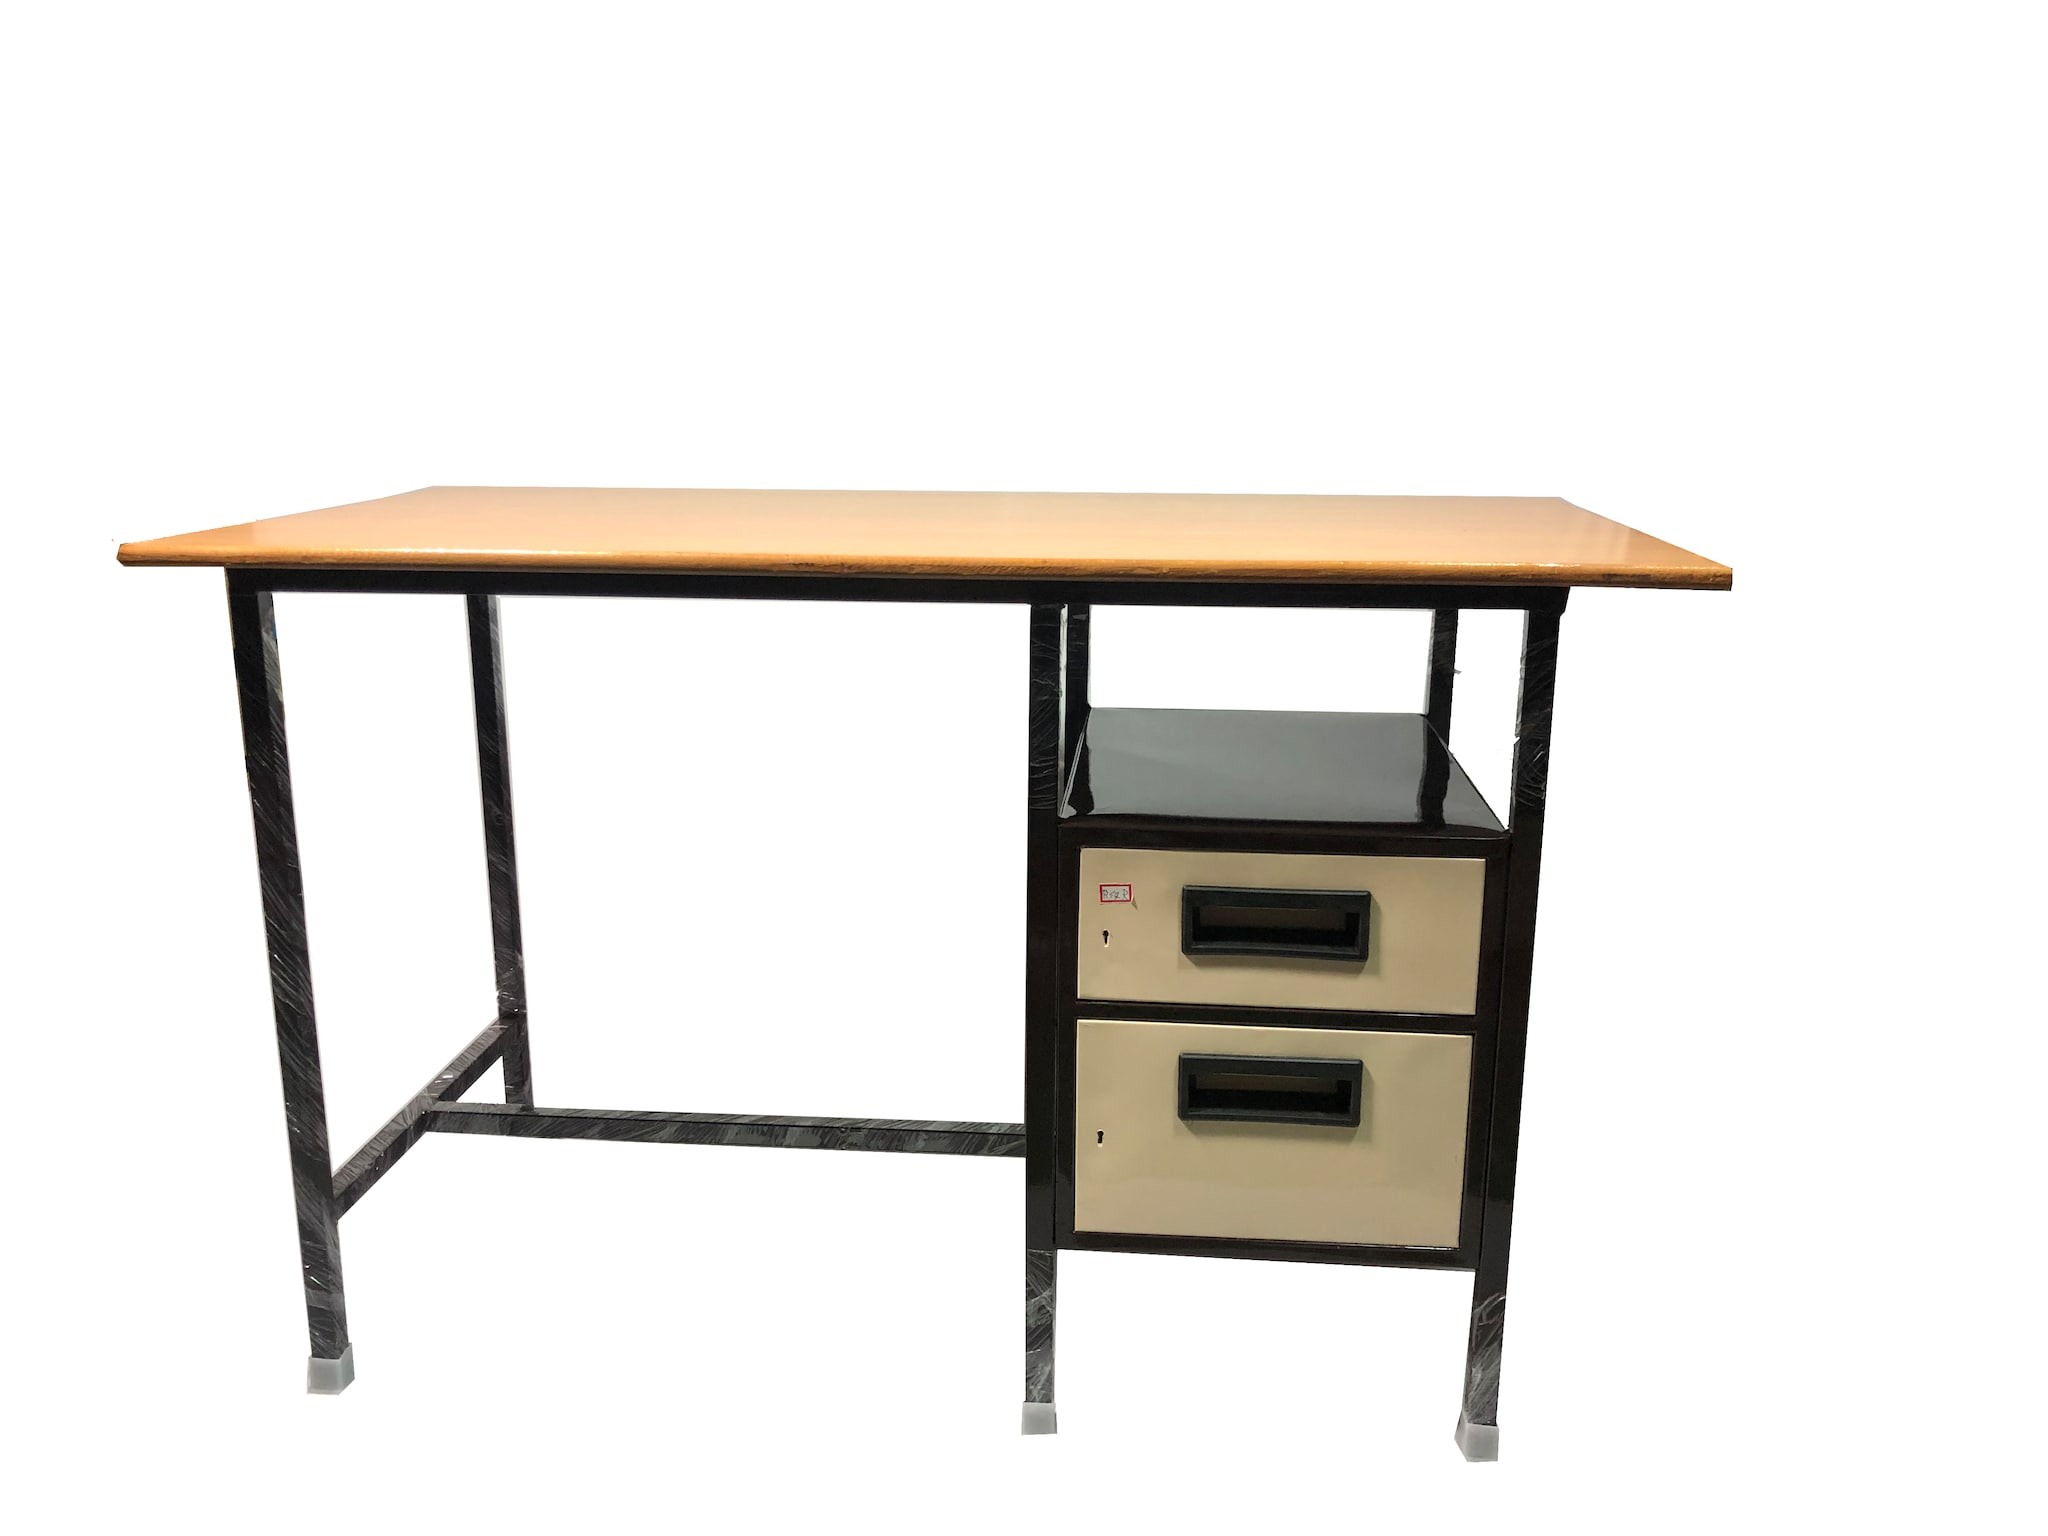 Metal Office Table 24 X 36 Inch (Brown & cream)